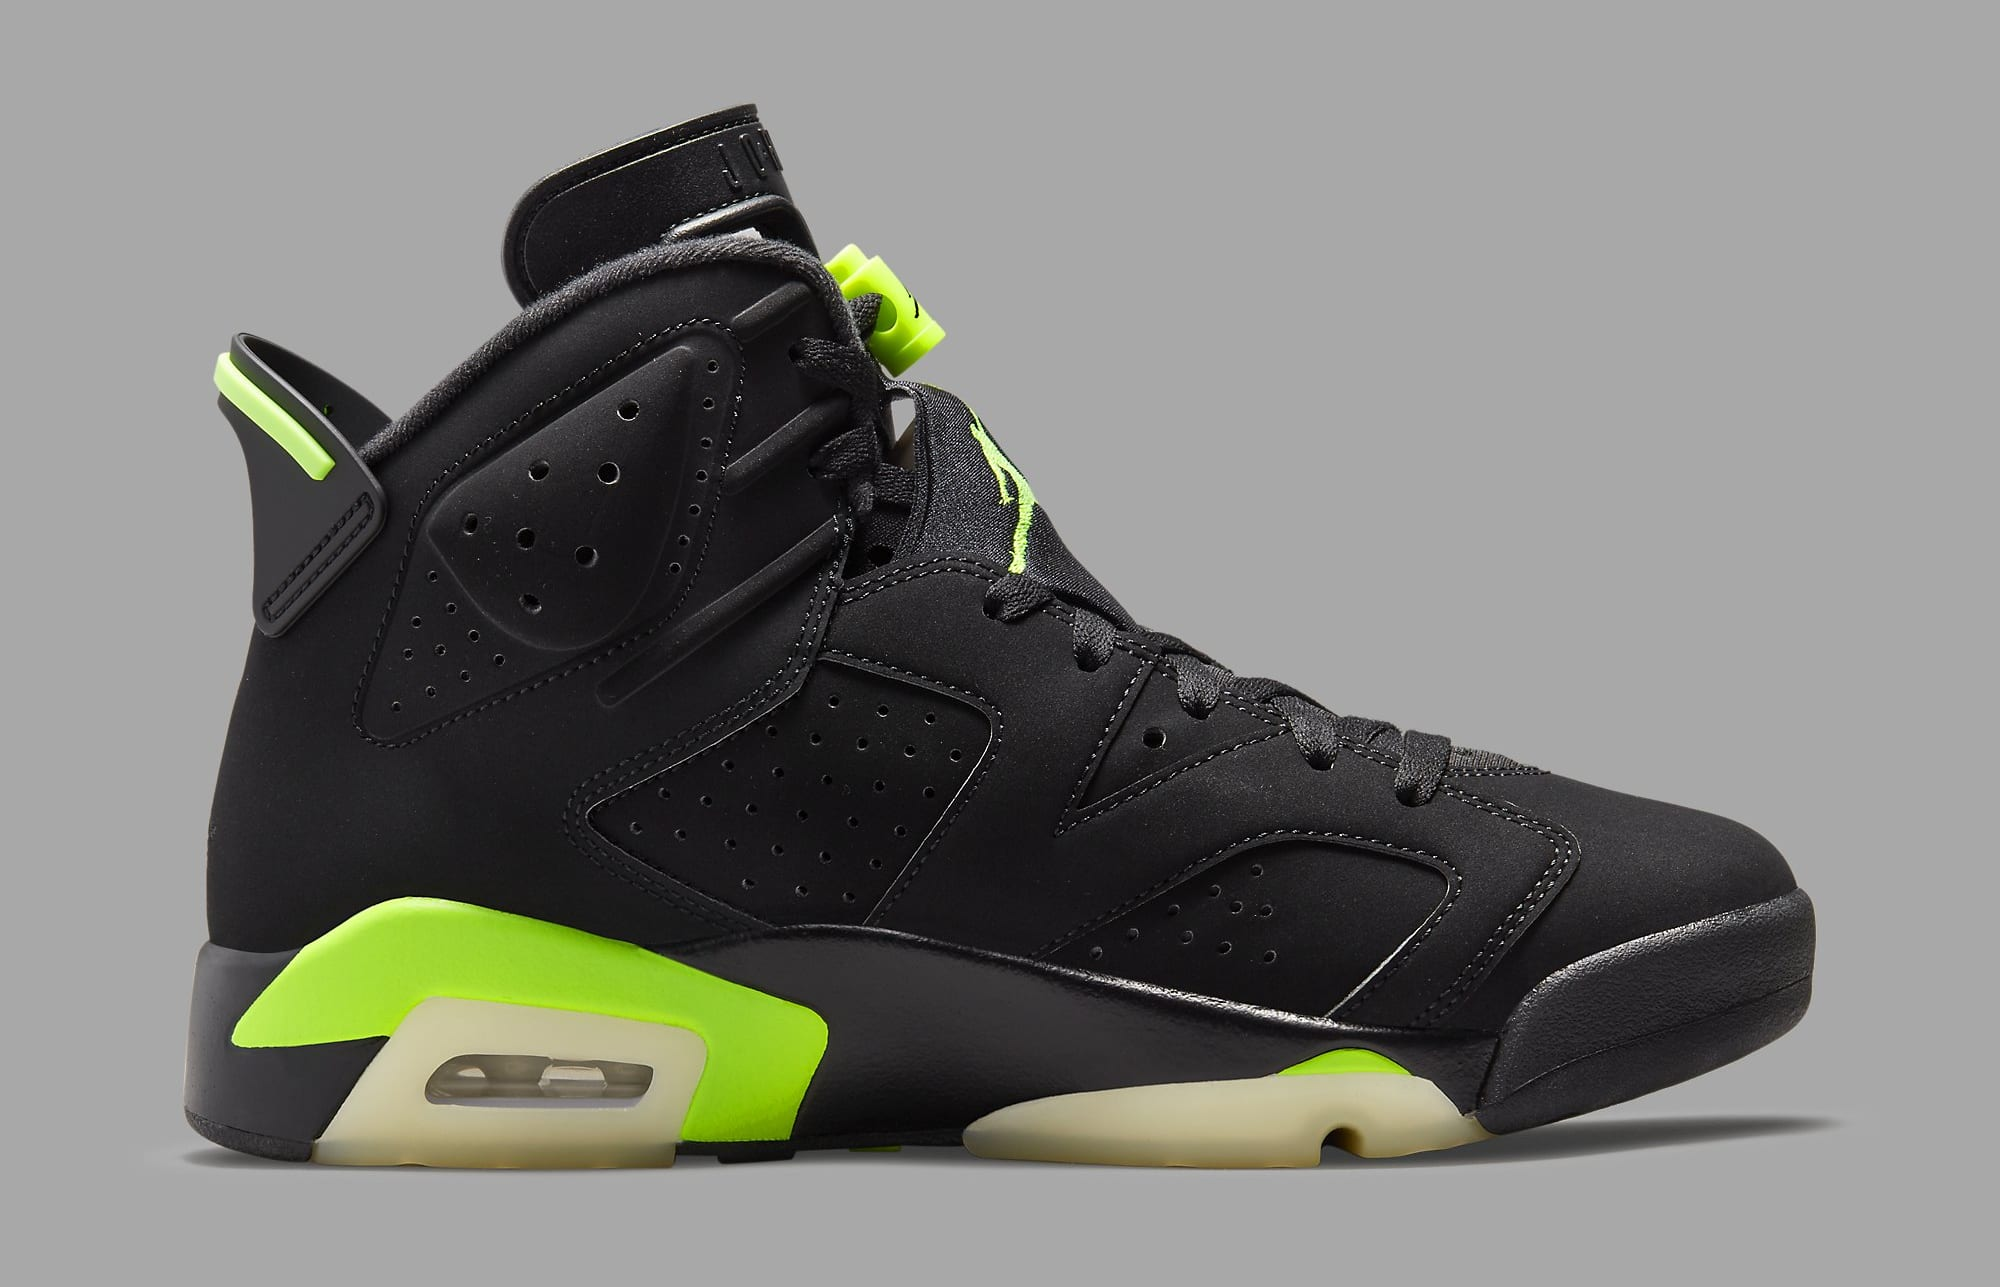 Air Jordan 6 Retro 'Electric Green' CT8529-003 Medial